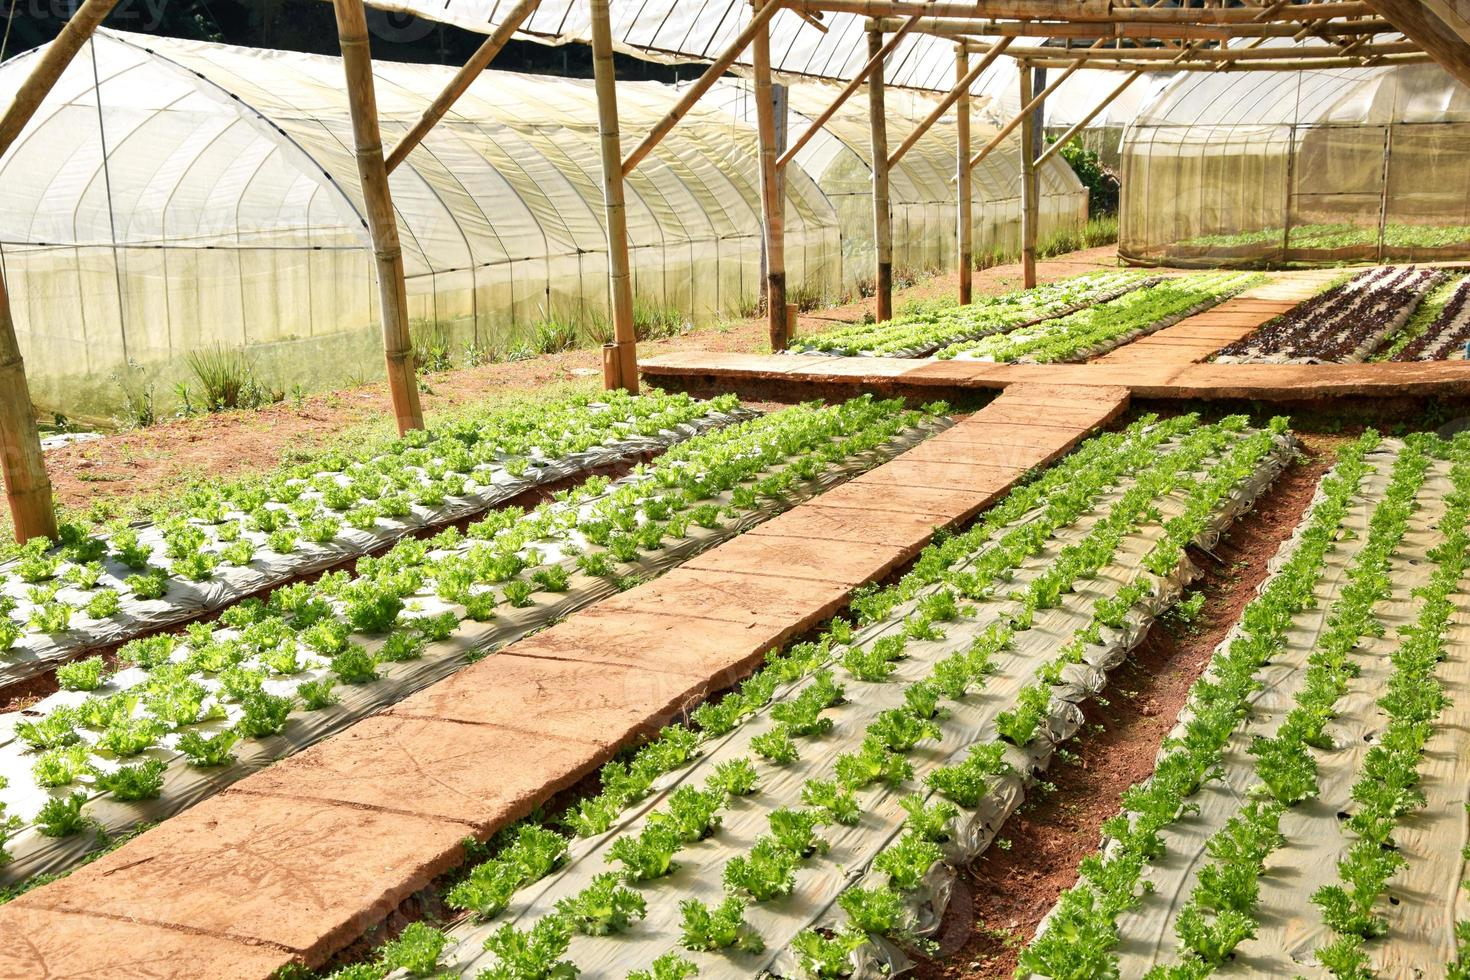 Fresh lettuce growing in an hydroponics system in greenhouse photo